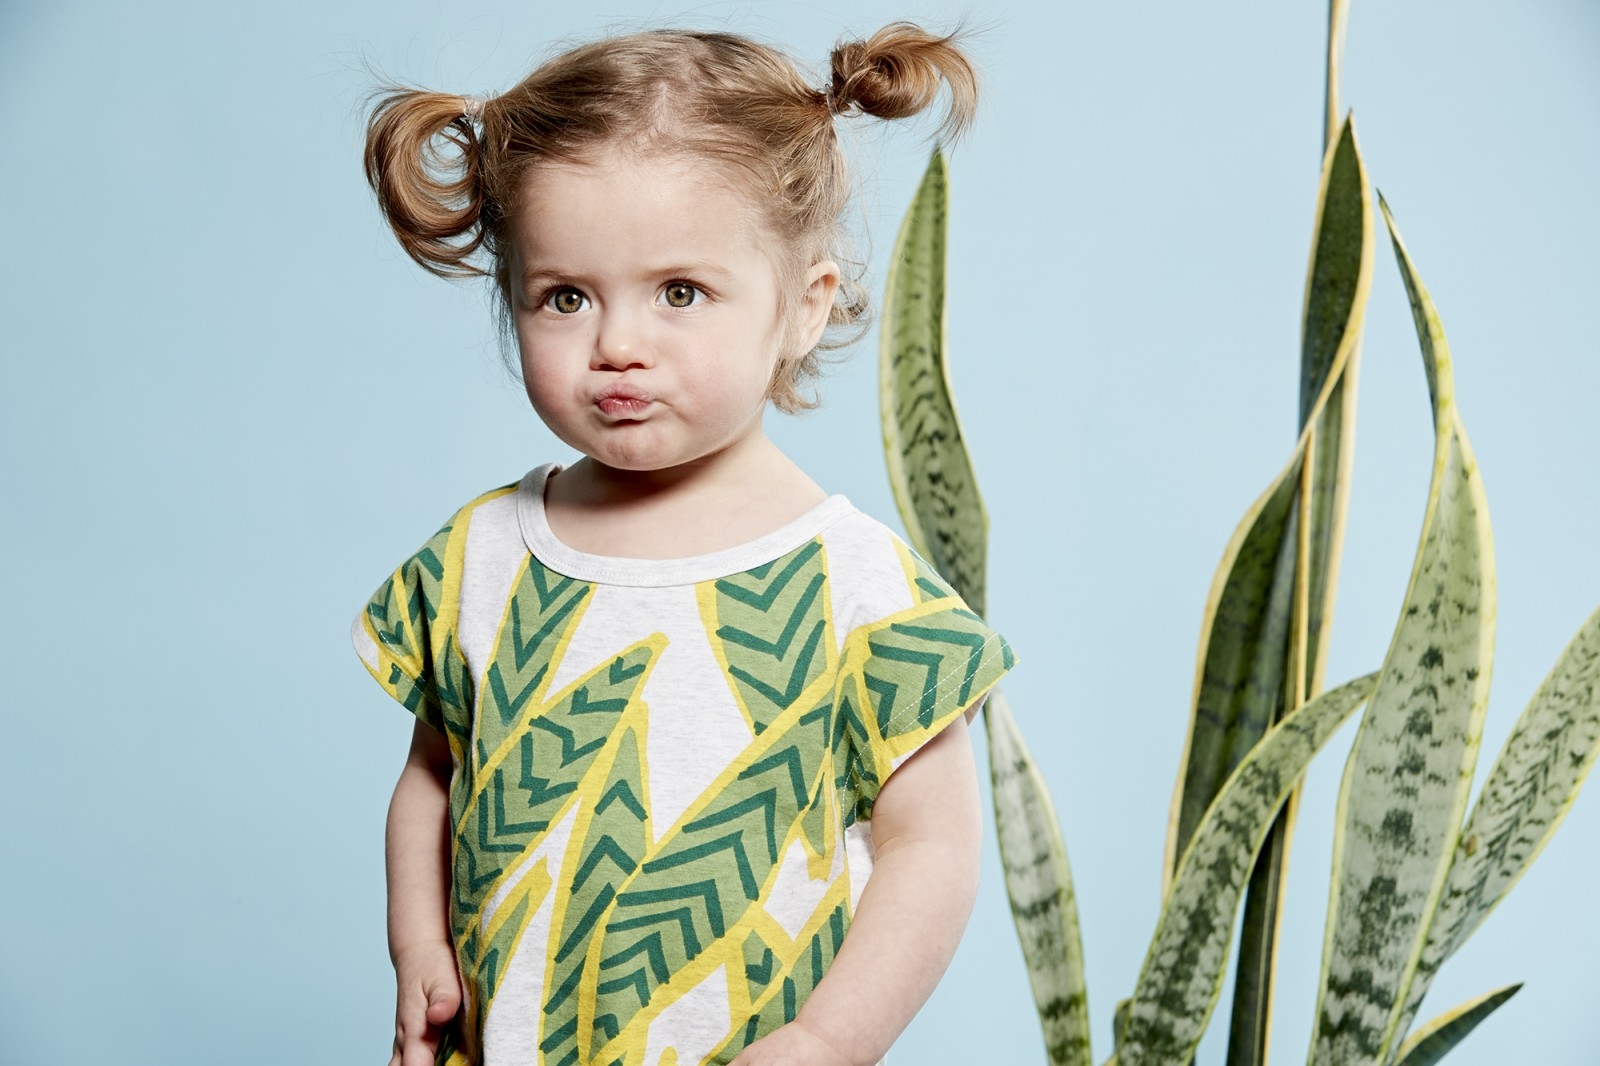 Sydneys leading kids fashion photographer, Michelle Young from Lantern Studio photographs the latest Tiny Tribe kids fashion campaign.